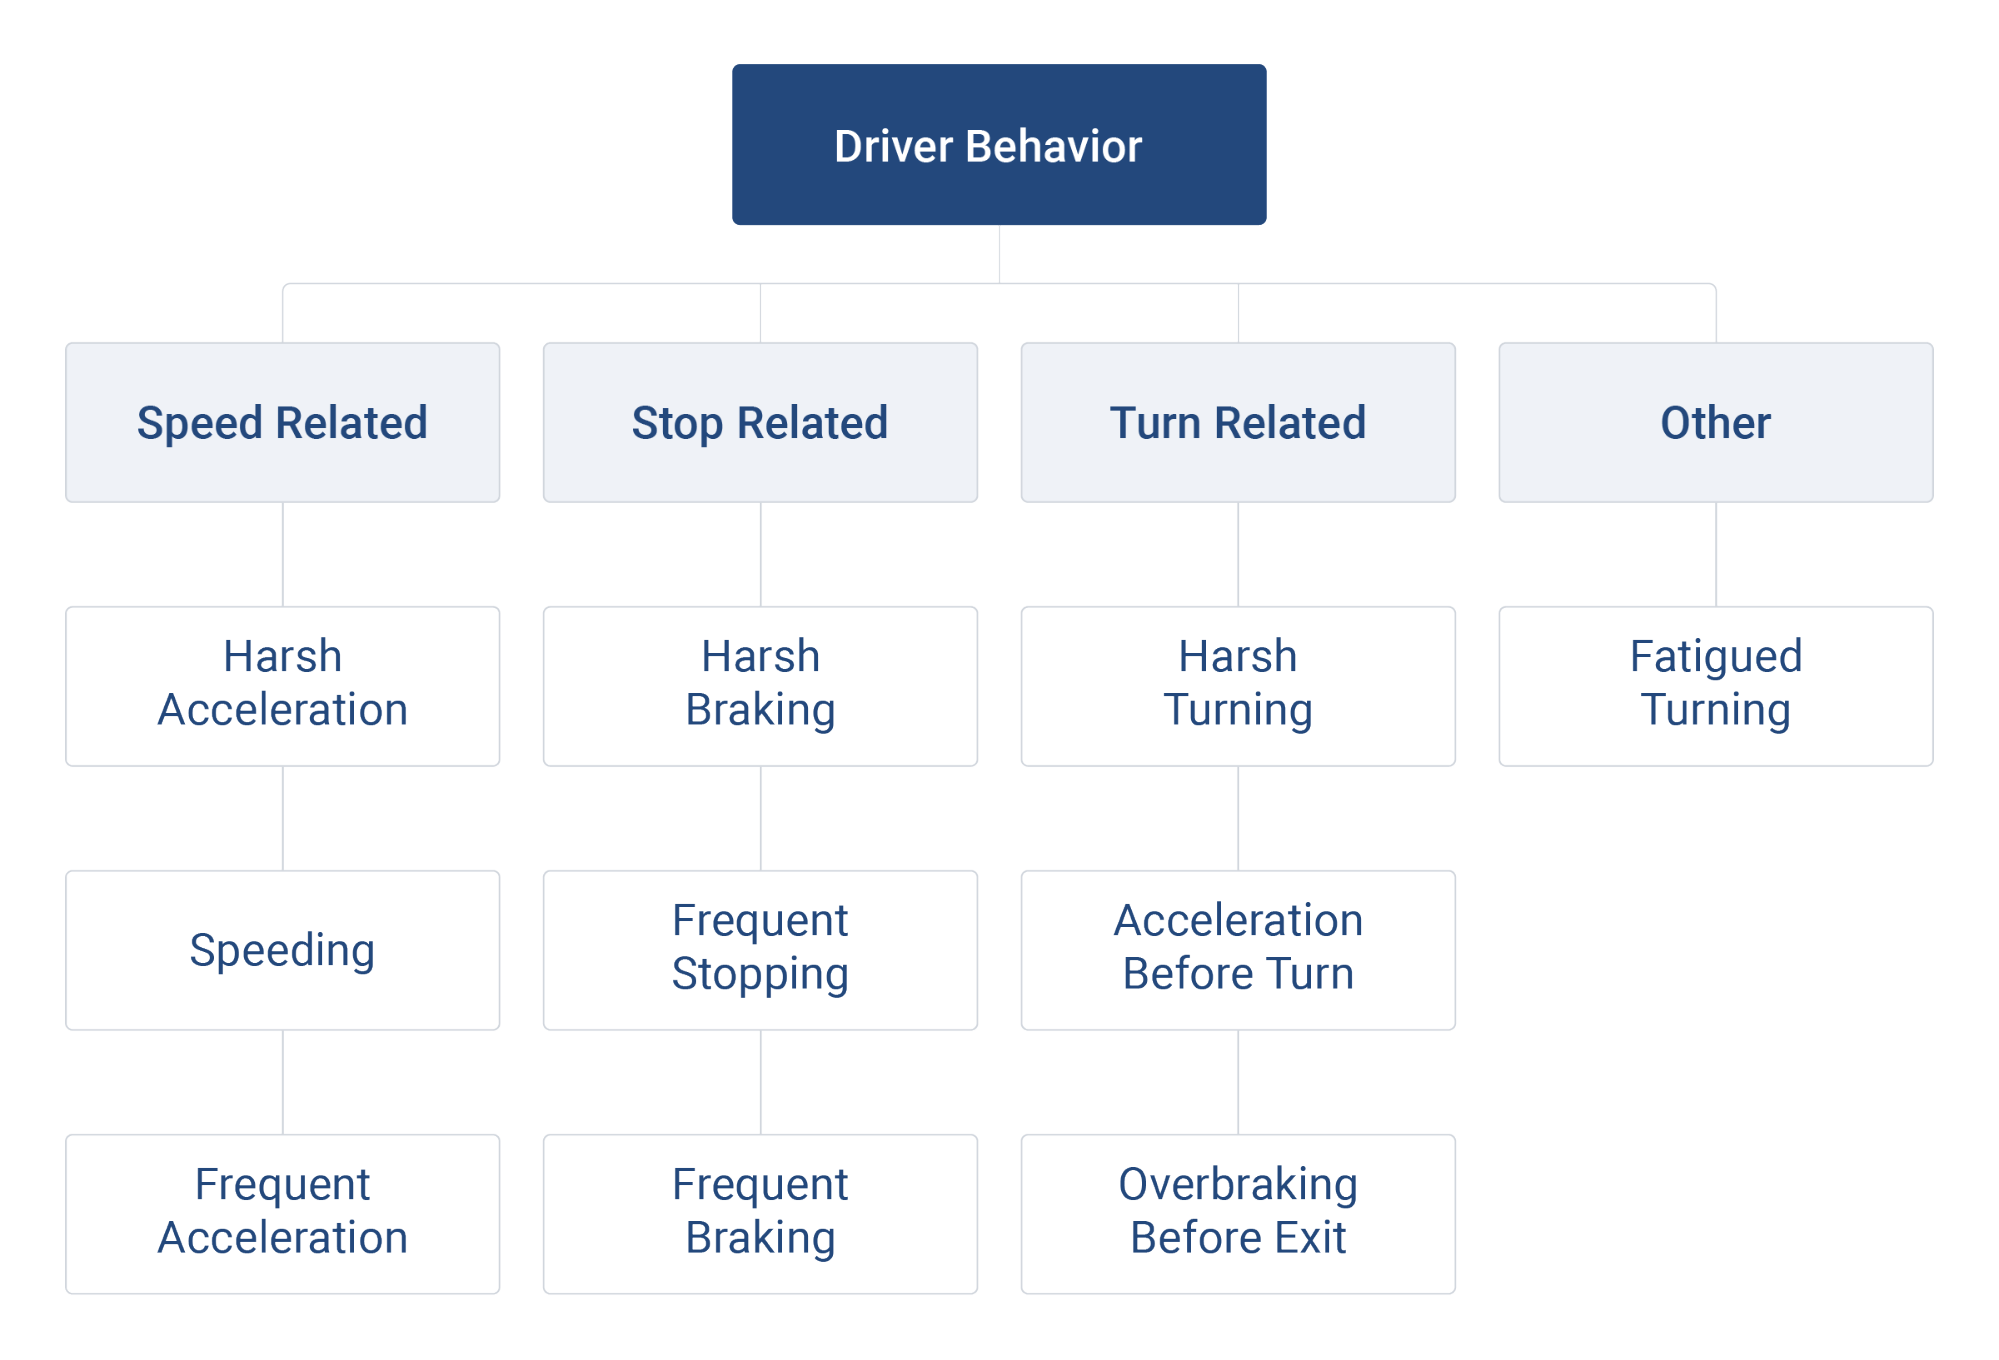 Driver behavior chart